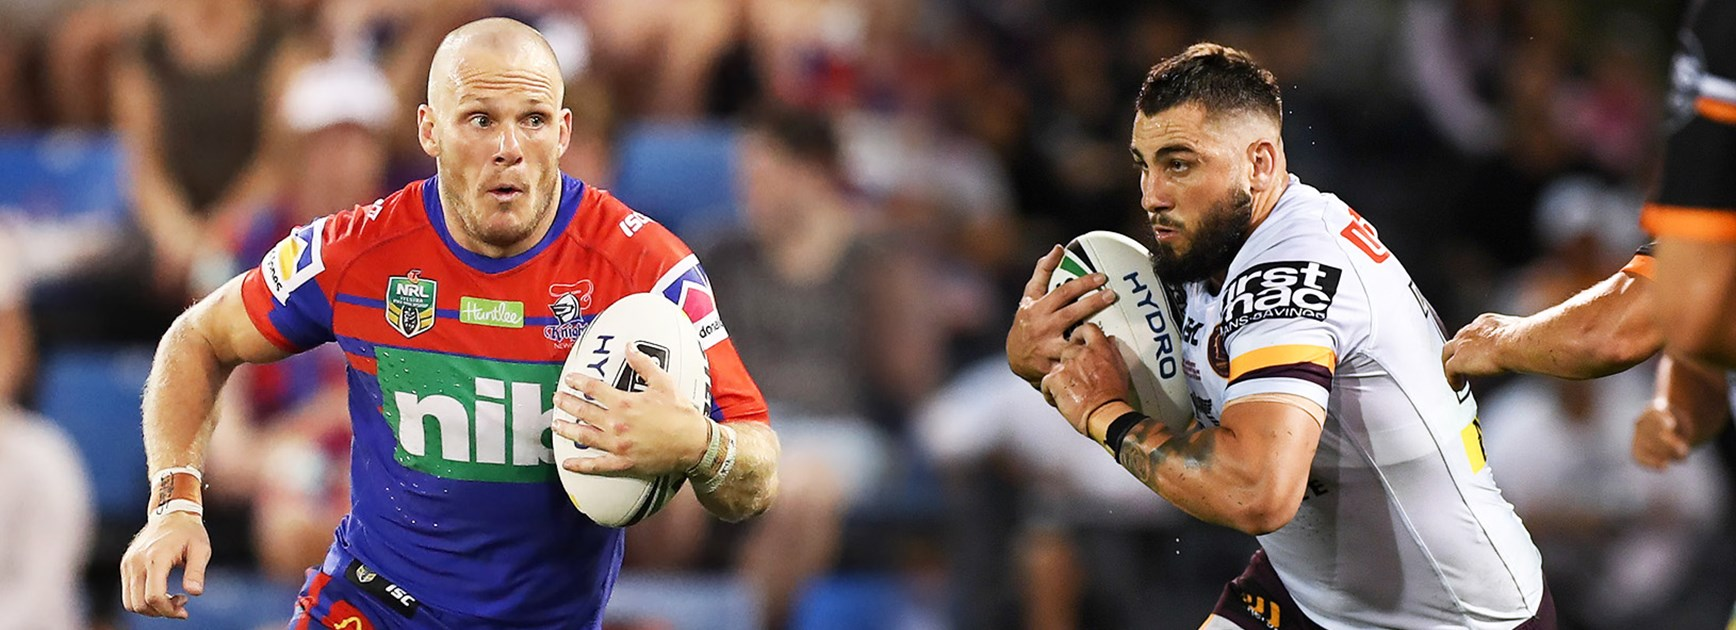 NRL match preview: Round 5